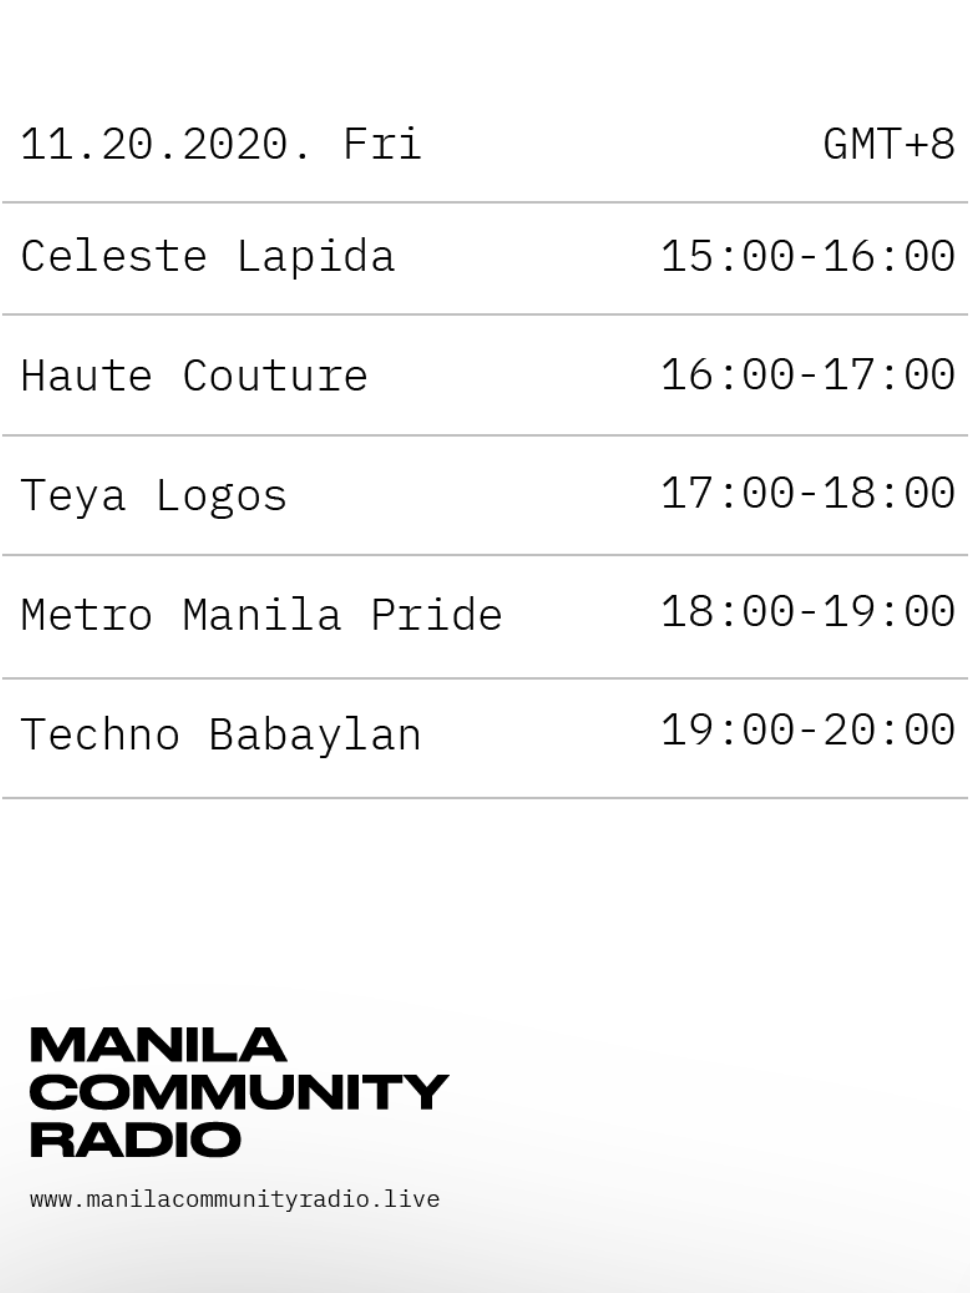 A poster of Manila Community Radio's schedule for November 11, 2020, featuring Metro Manila Pride at 18:00 - 19:00.